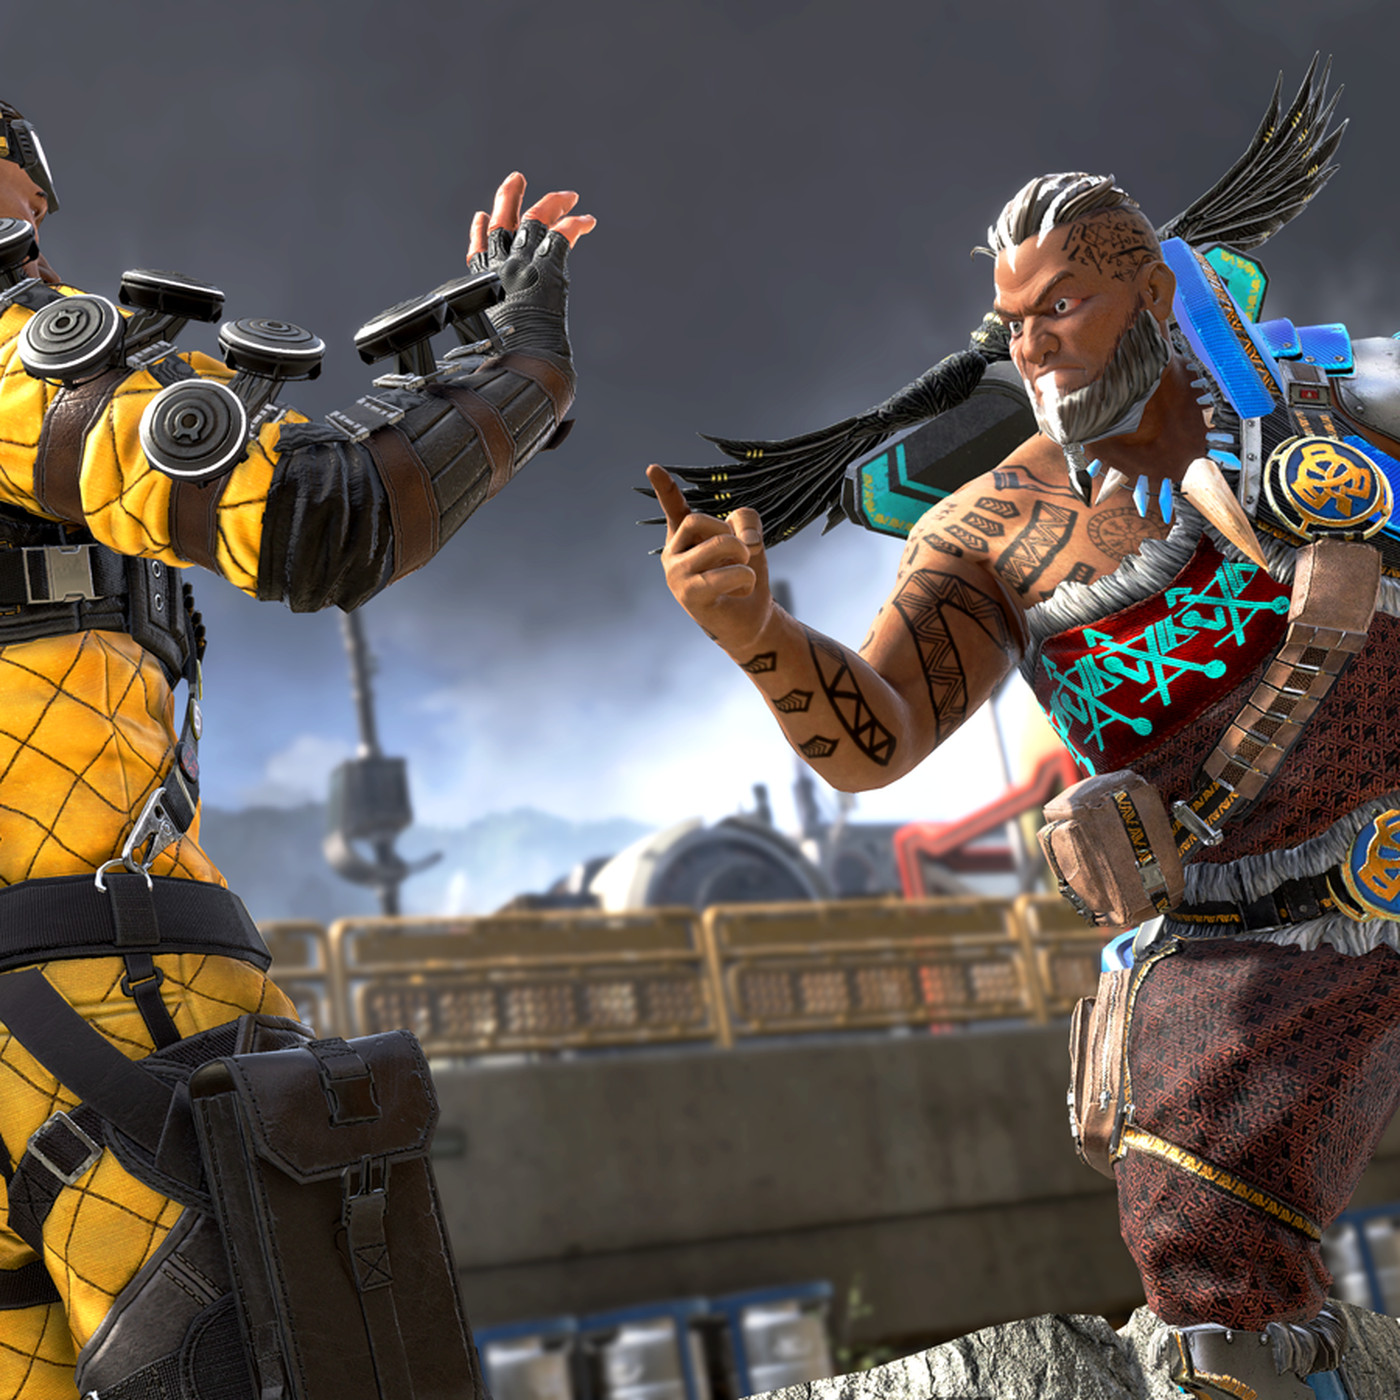 Apex Legends update brings a new area, new skins, and solo